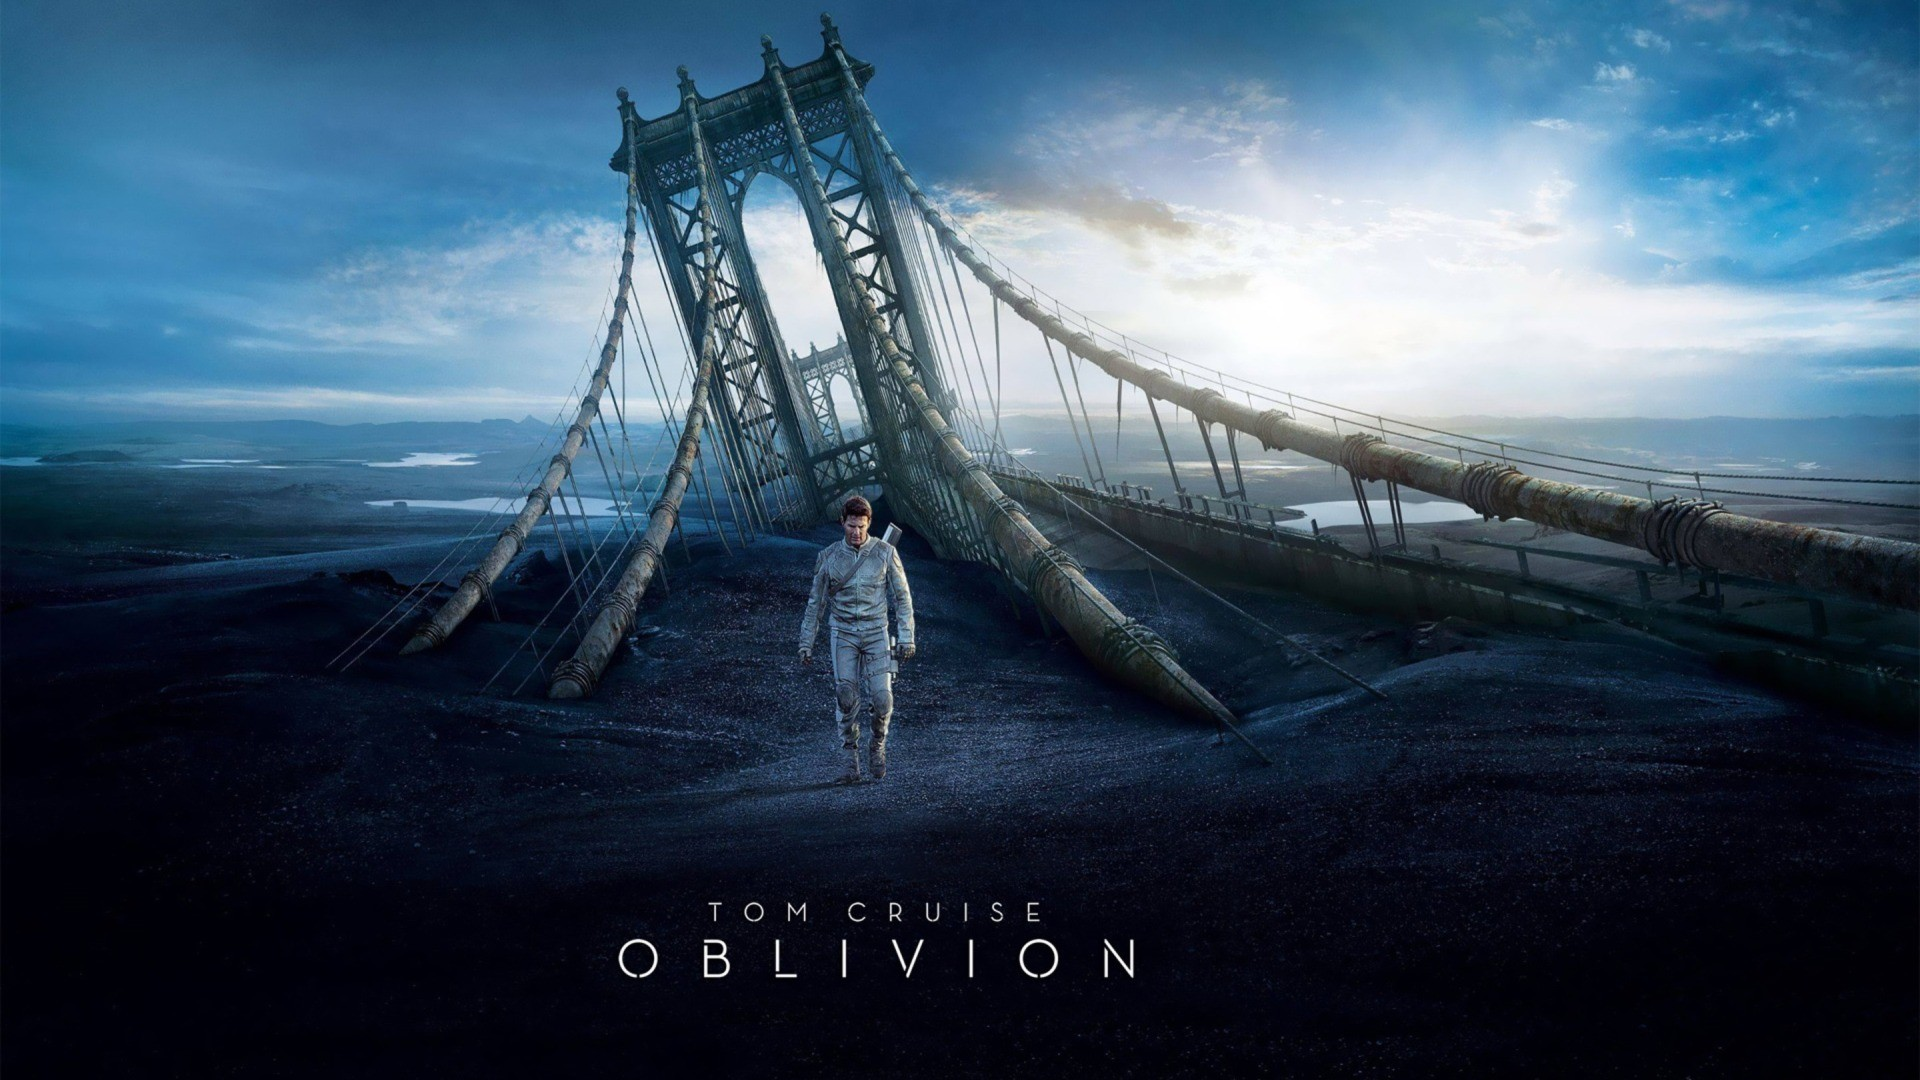 Tom Cruise   Oblivion   Wallpaper 42523 1920x1080